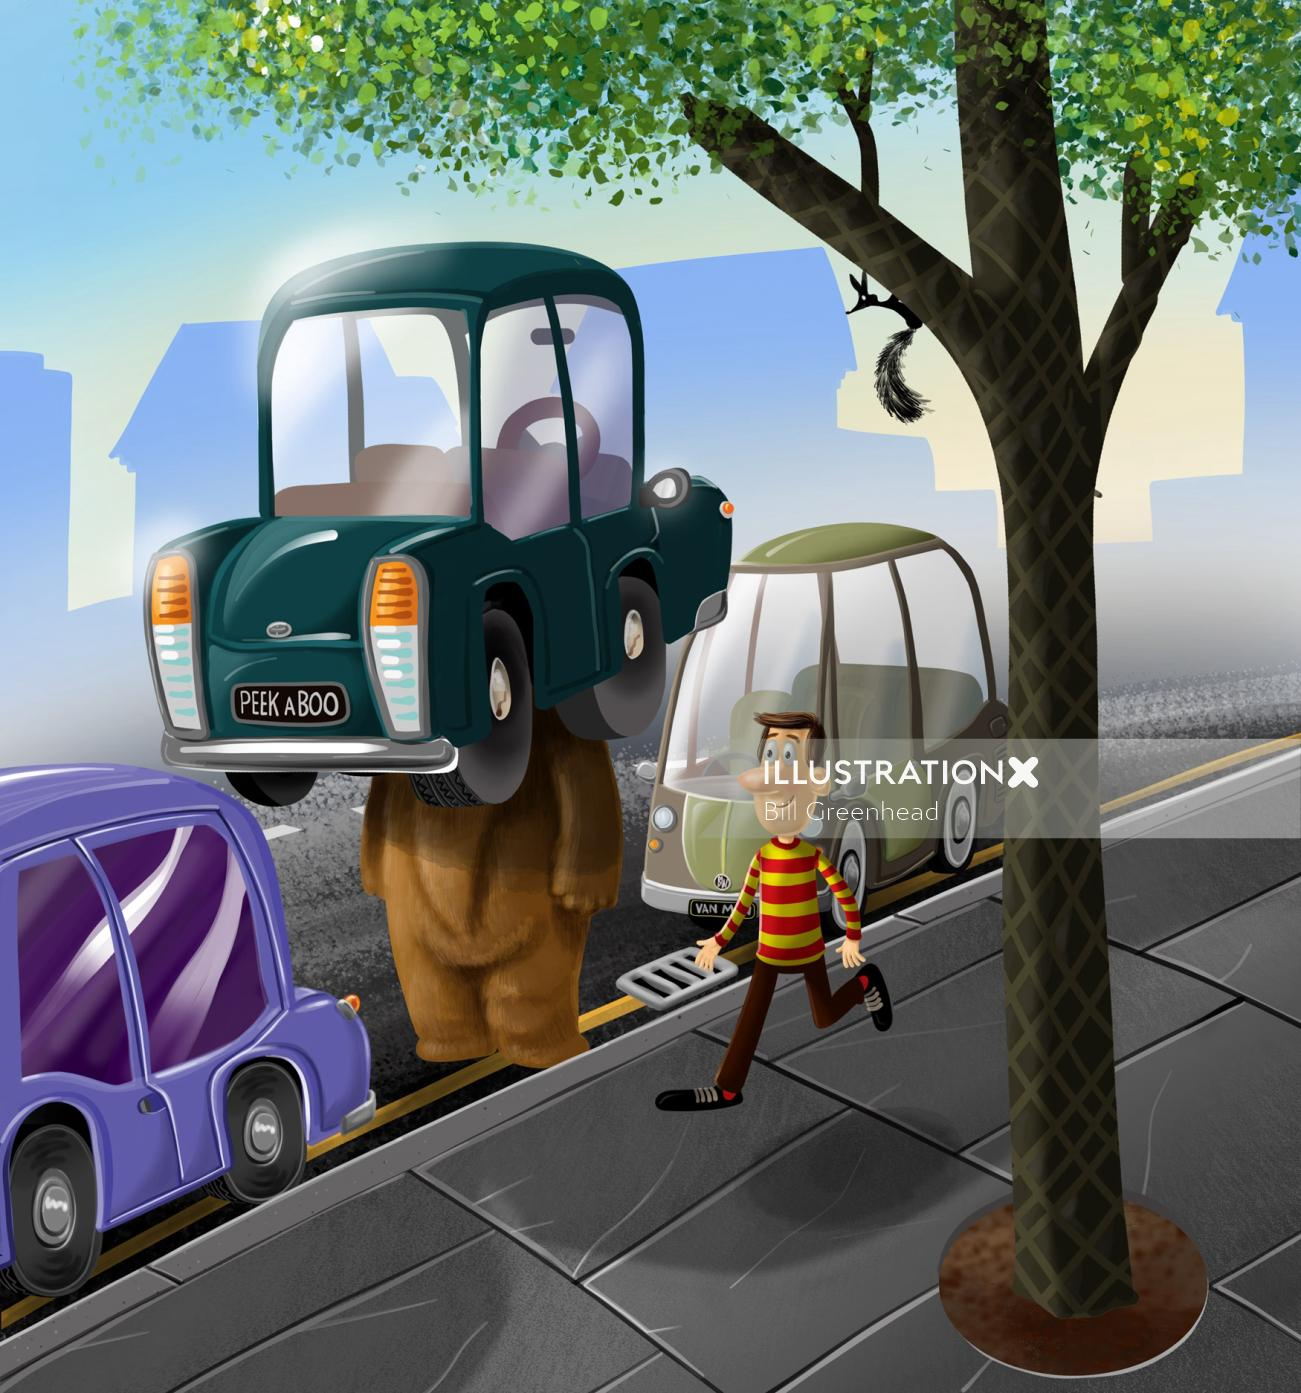 Illustration of Bear playing hide and seek in the city